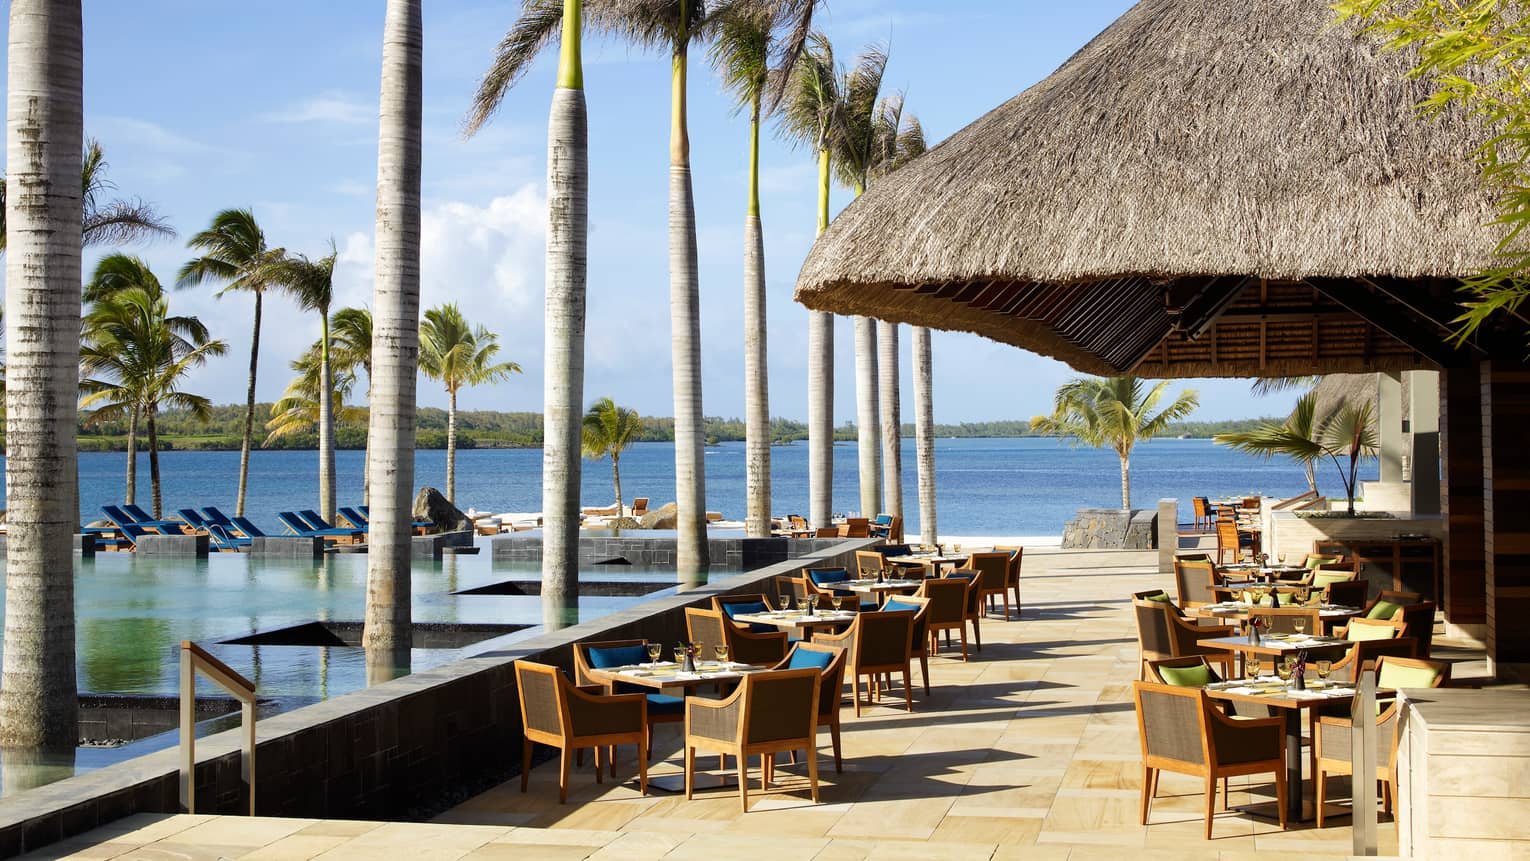 Patio dining tables by row of palms, outdoor swimming pool, thatched-roof hut